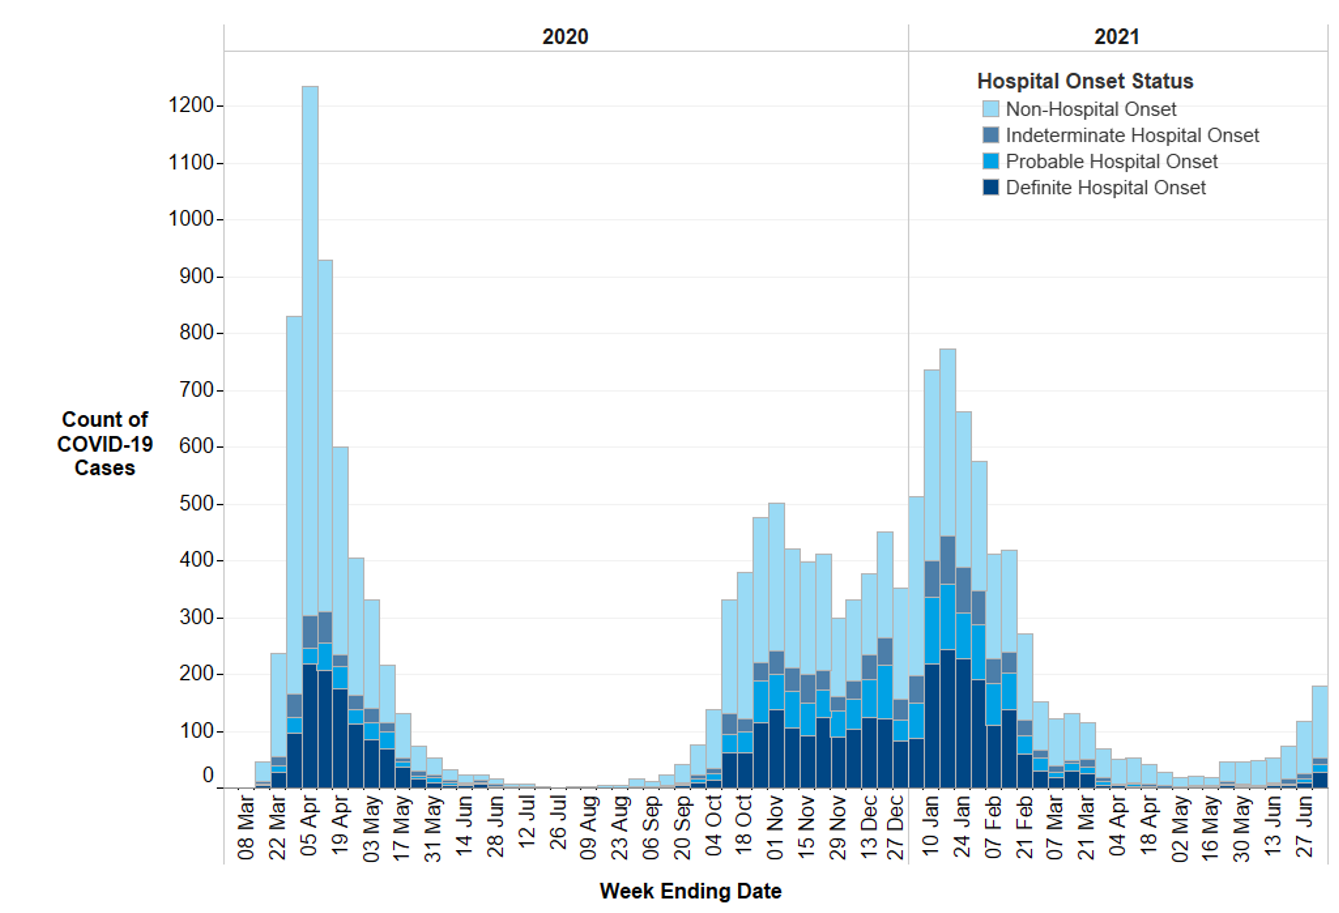 Figure 1: Epidemic curve of COVID-19 cases with first positive specimen taken during an inpatient stay, by onset status: week-ending 1 March 2020 to week-ending 4 July 2021 (n= 15,984).